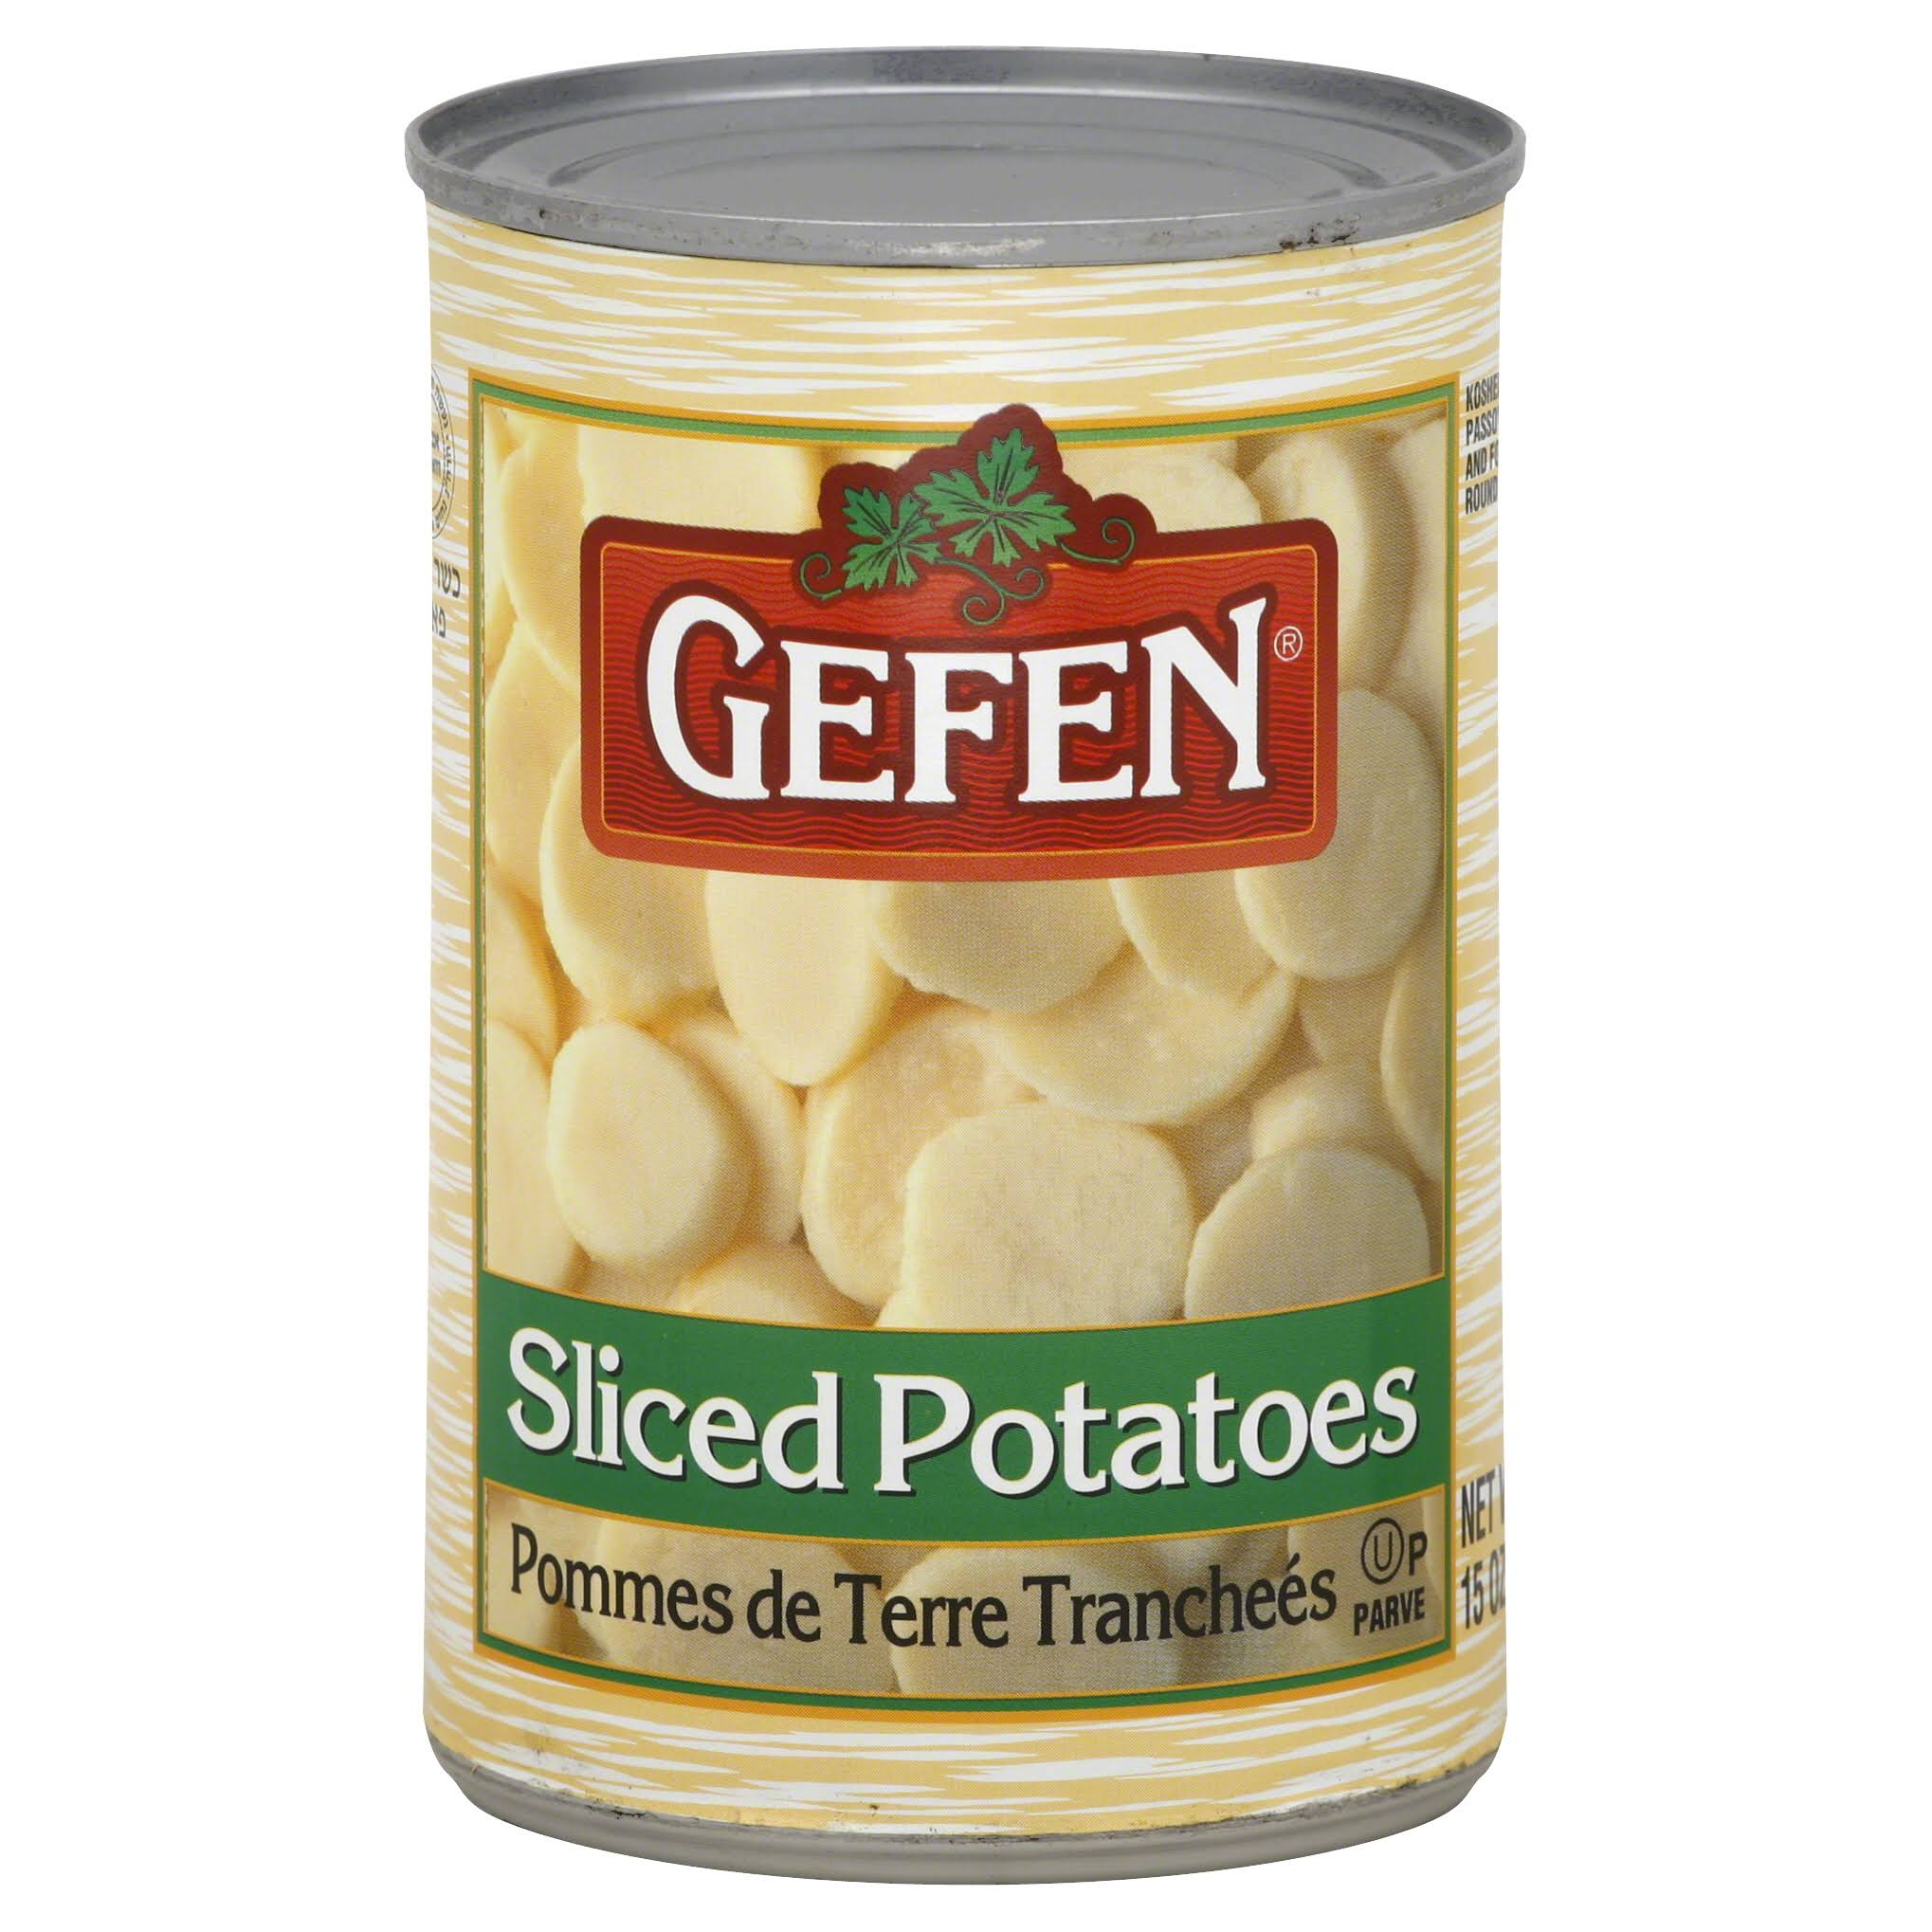 Gefen Potatoes, Sliced - 15 oz